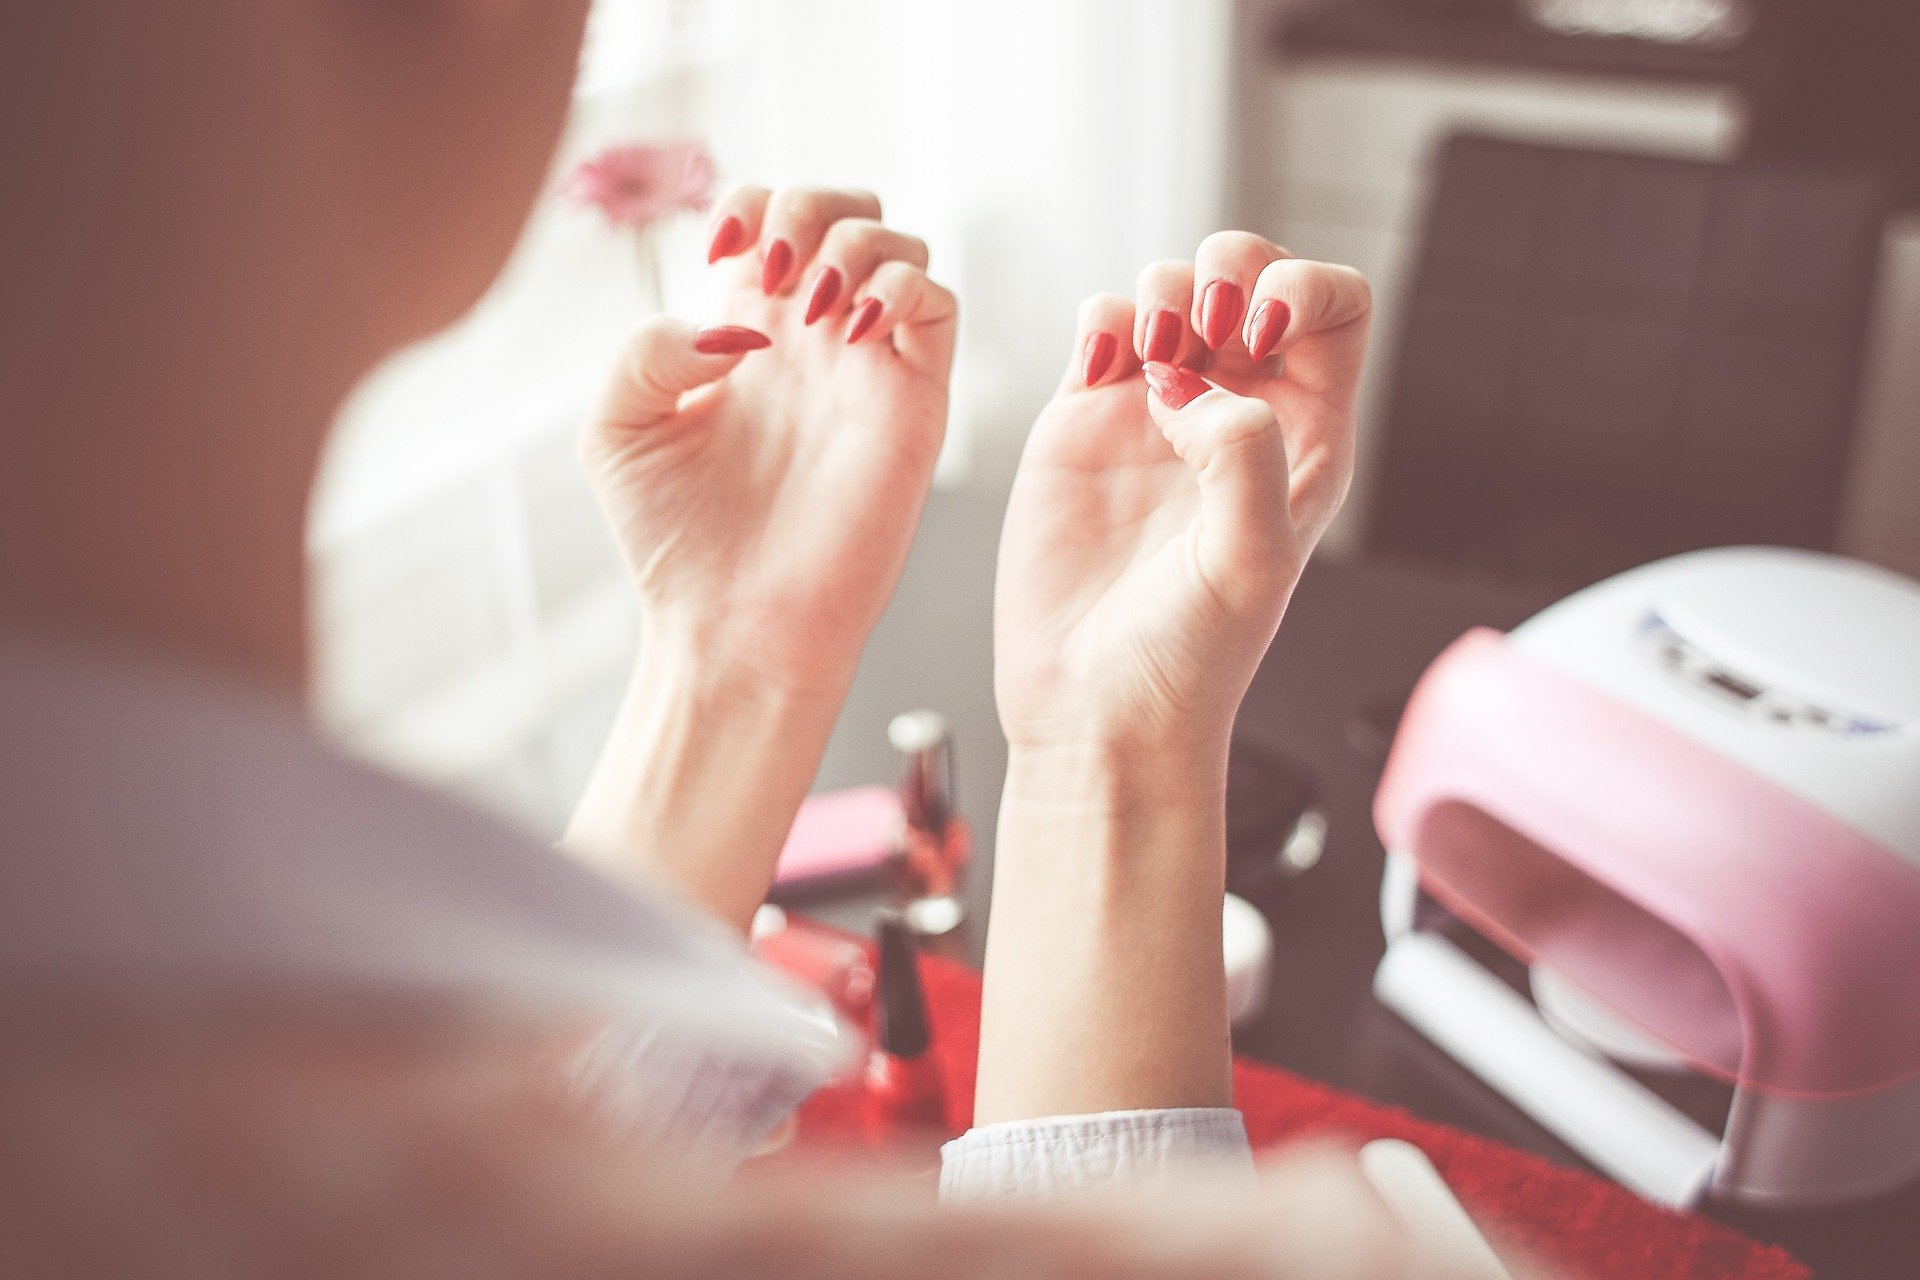 woman showing off her red gel nails in a beauty, nail salon. For use on the Gel Nails Course page.